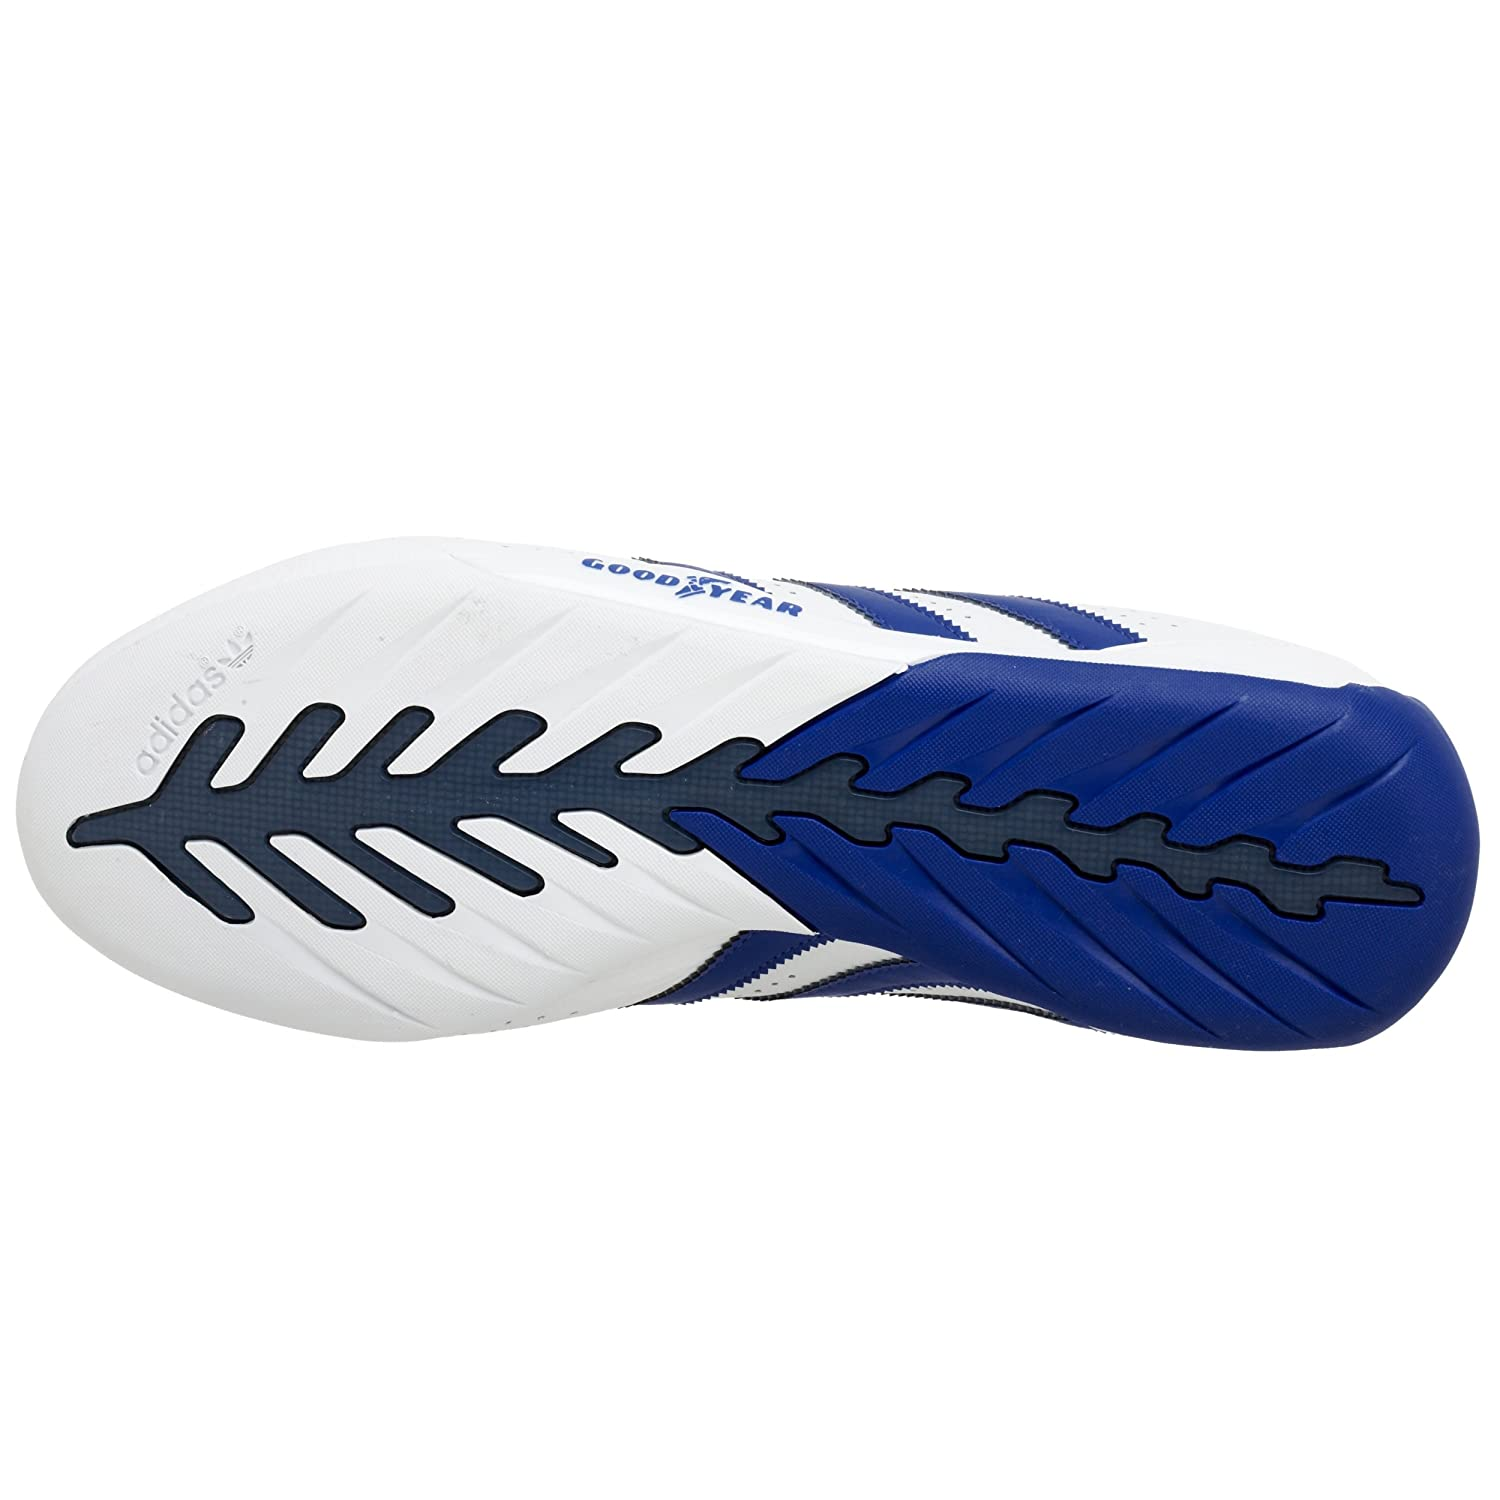 adidas goodyear shoes for sale